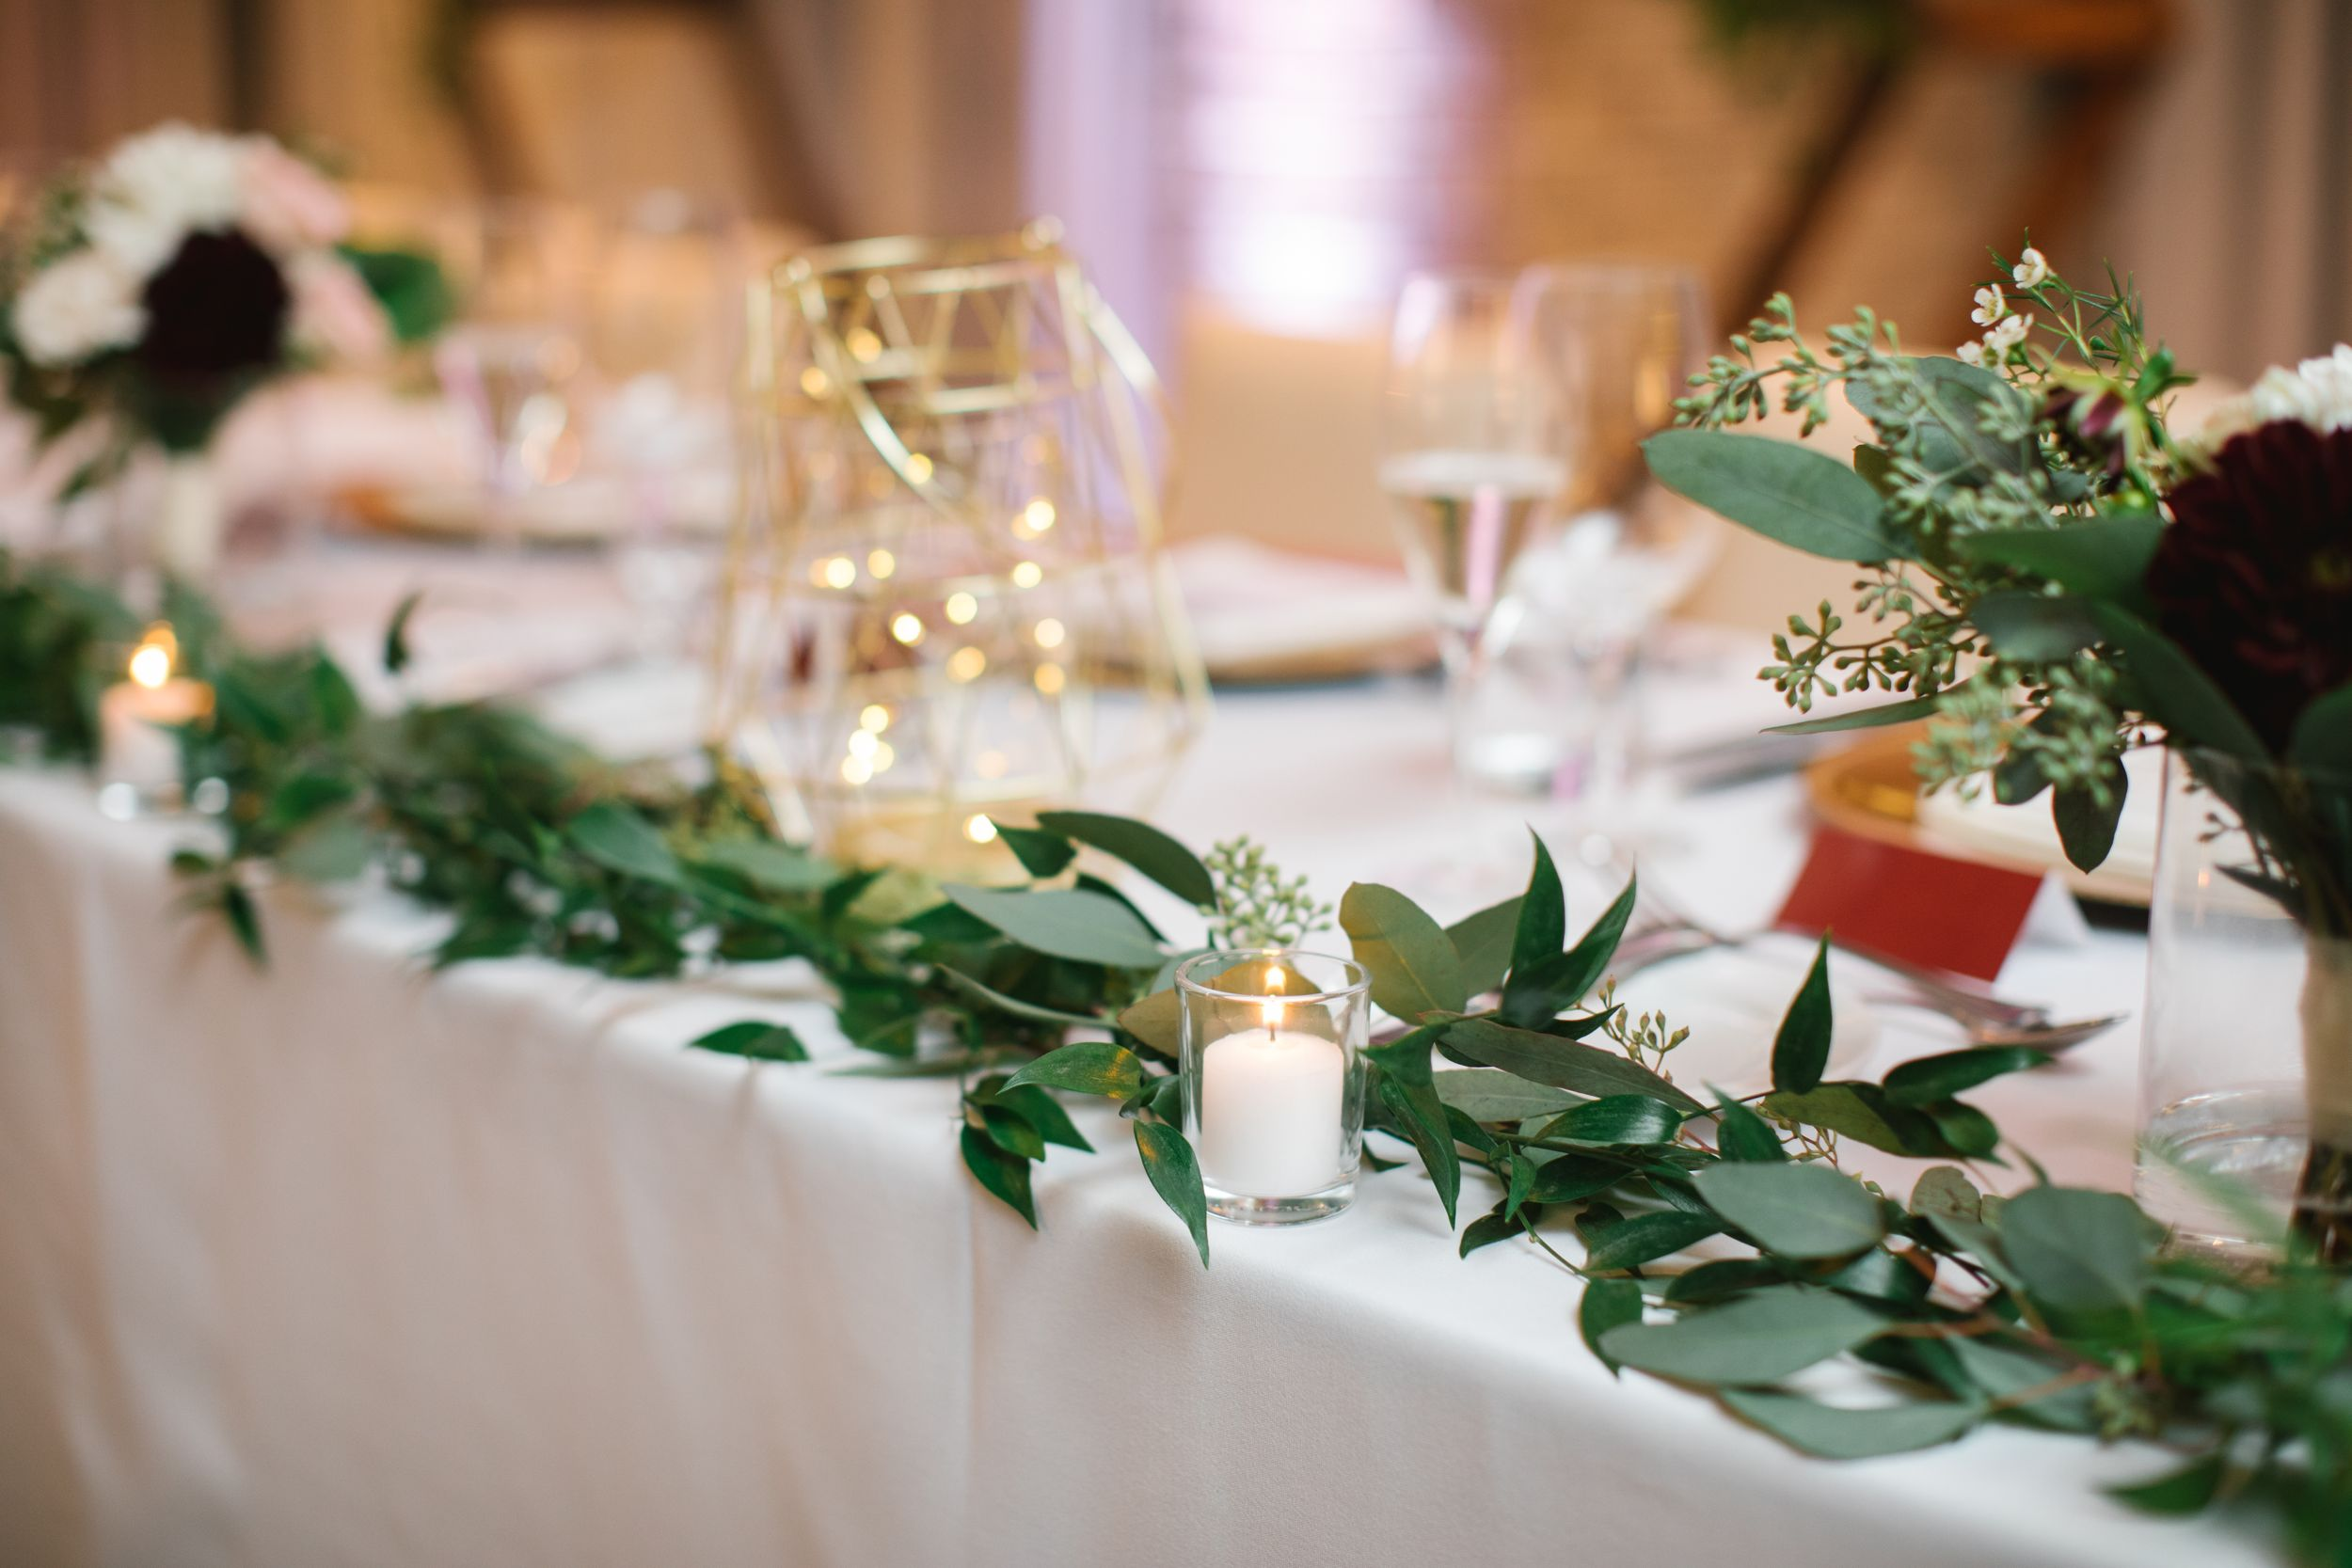 close up of wedding decor candle and greenery table runner head table